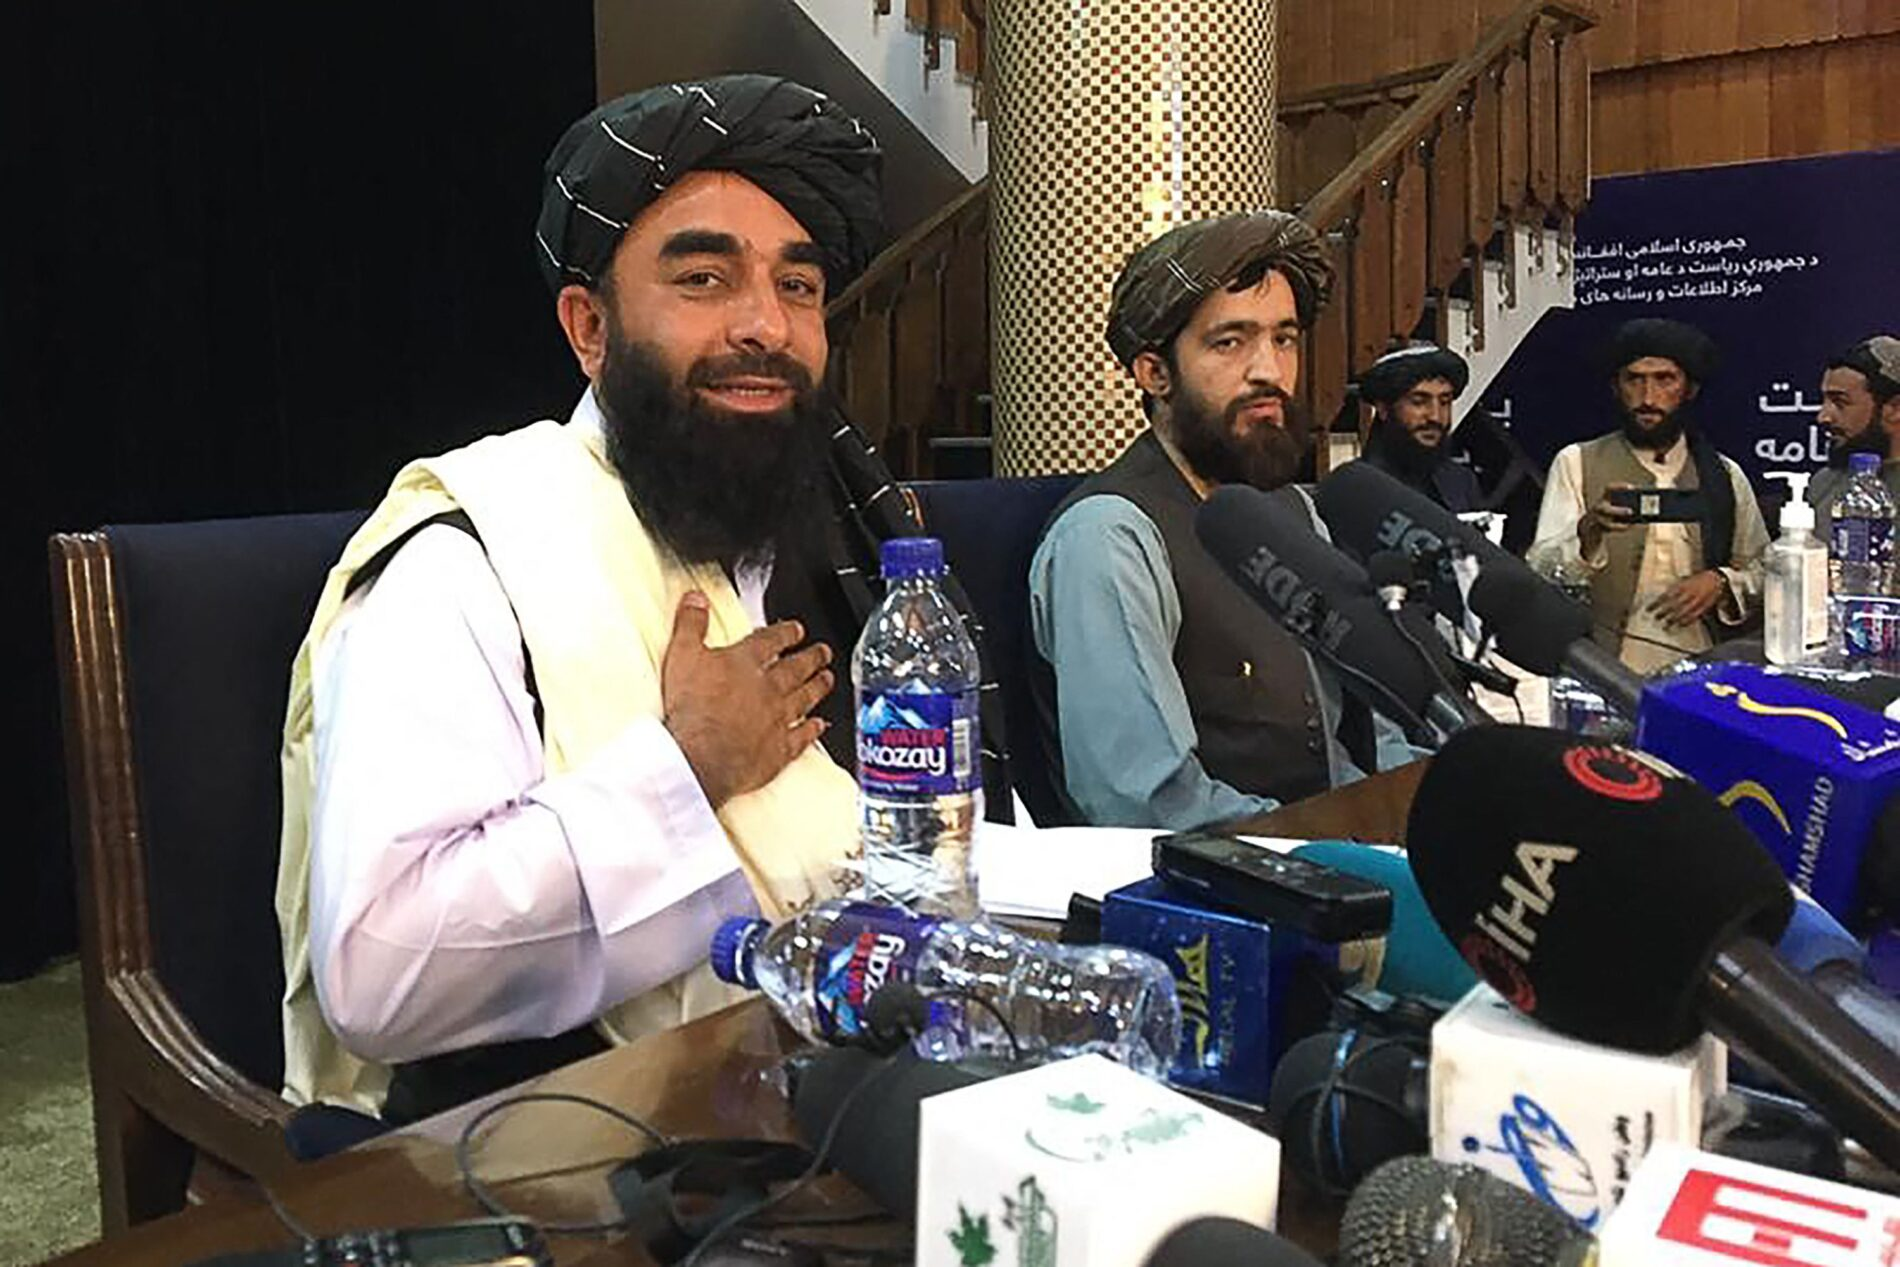 Taliban spokesperson Zabihullah Mujahid (L) gestures as he arrives to hold the first press conference in Kabul on August 17, 2021 following the Taliban stunning takeover of Afghanistan. (Photo by Hoshang HASHIMI / AFP)